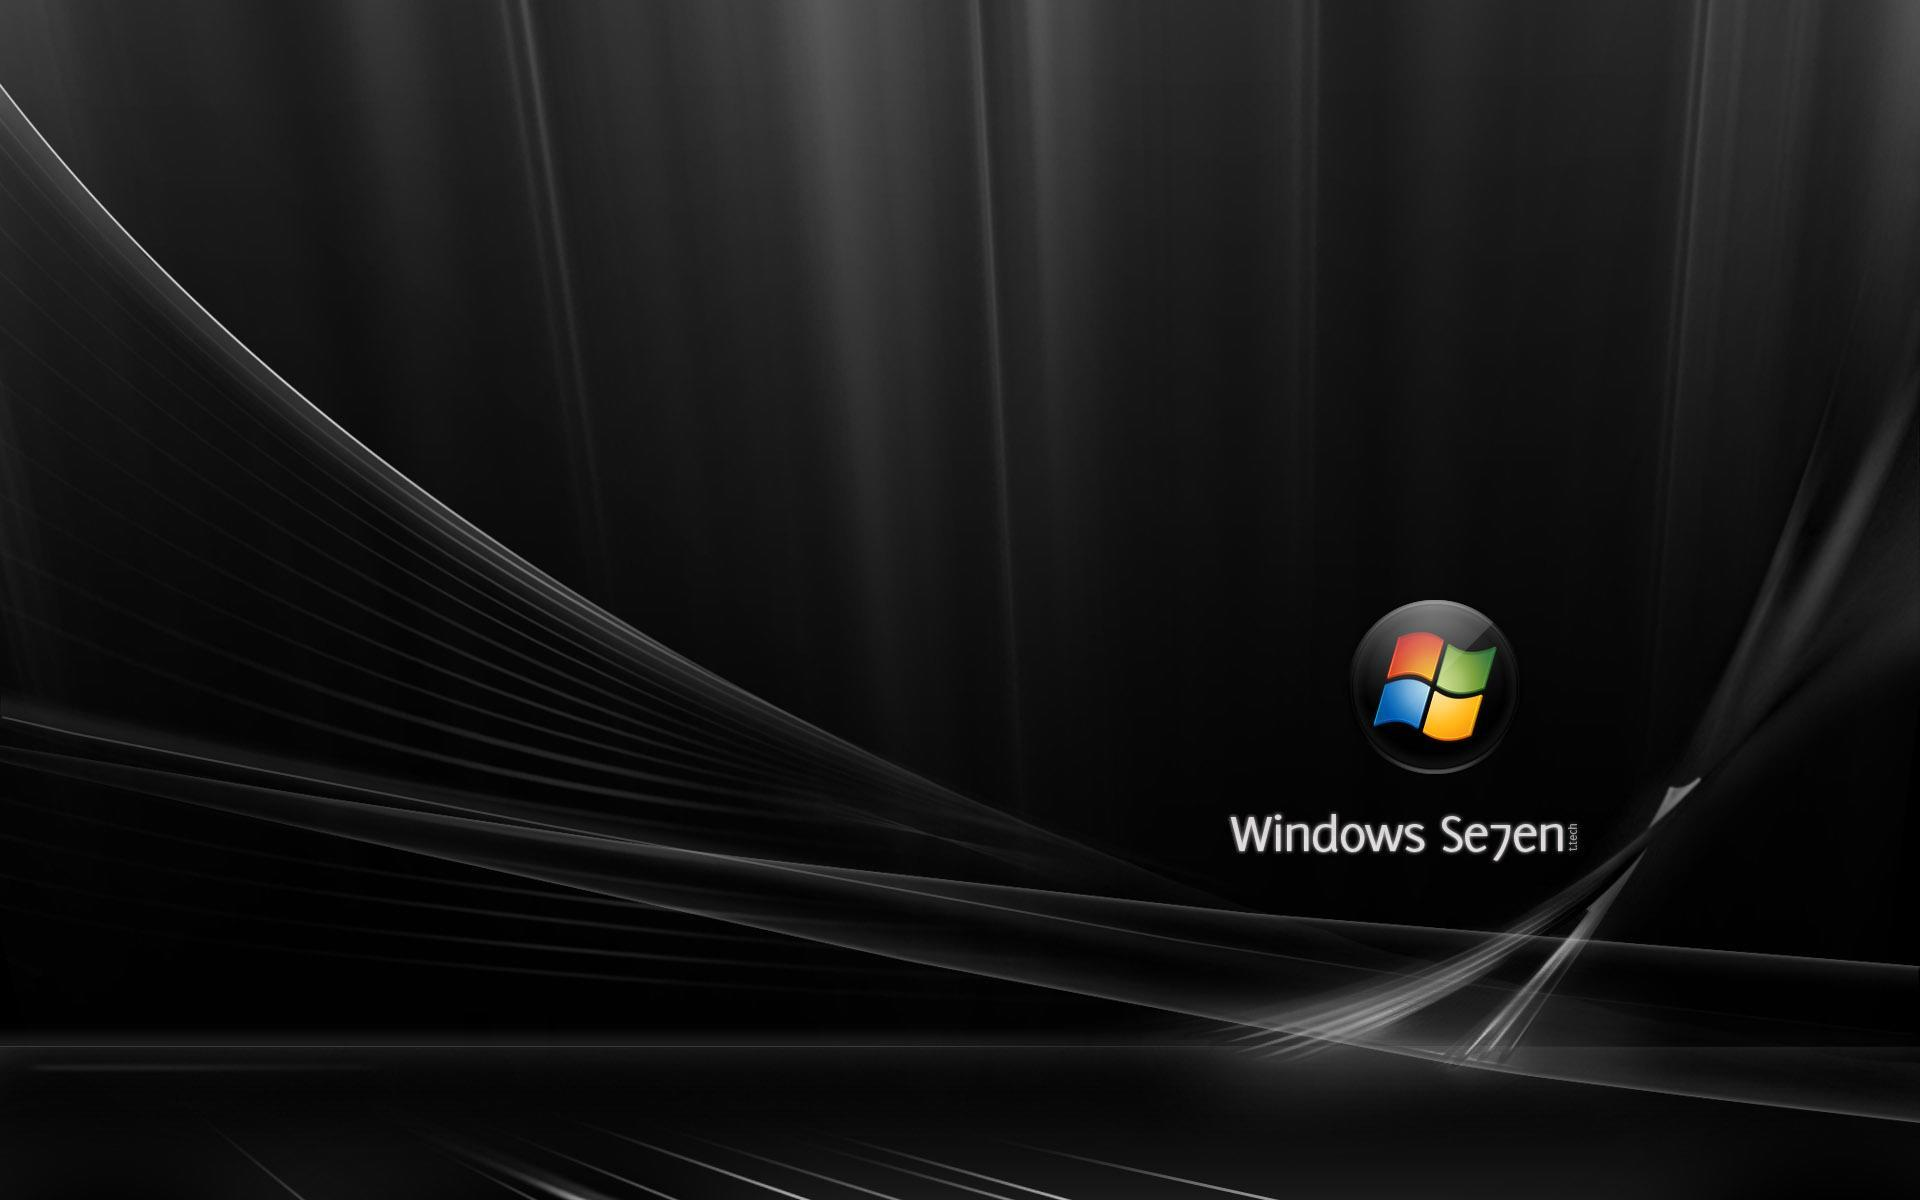 Windows 7 Professional Wallpapers Wallpaper Cave